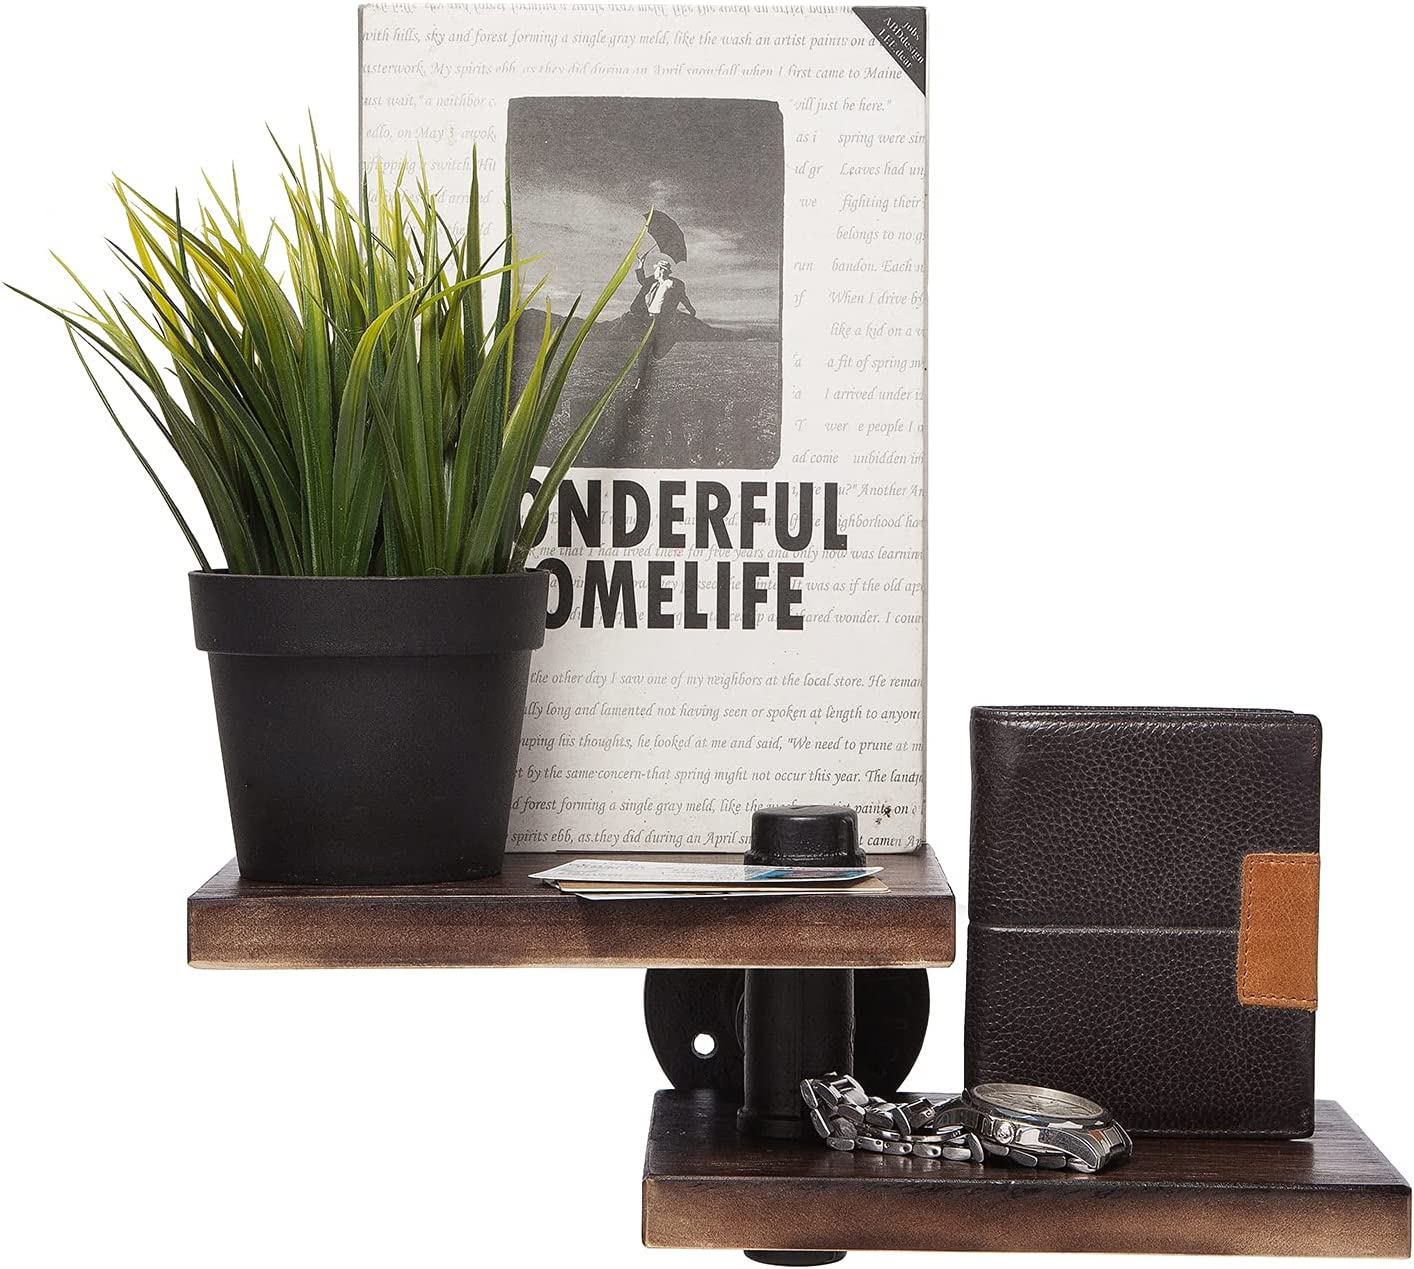 Floating Shelves for Wall, HAIPUSEN Rustic Wood Plant Book Shelf Home Decorations for Living Room Bedroom Bathroom Kitchen Office Storage